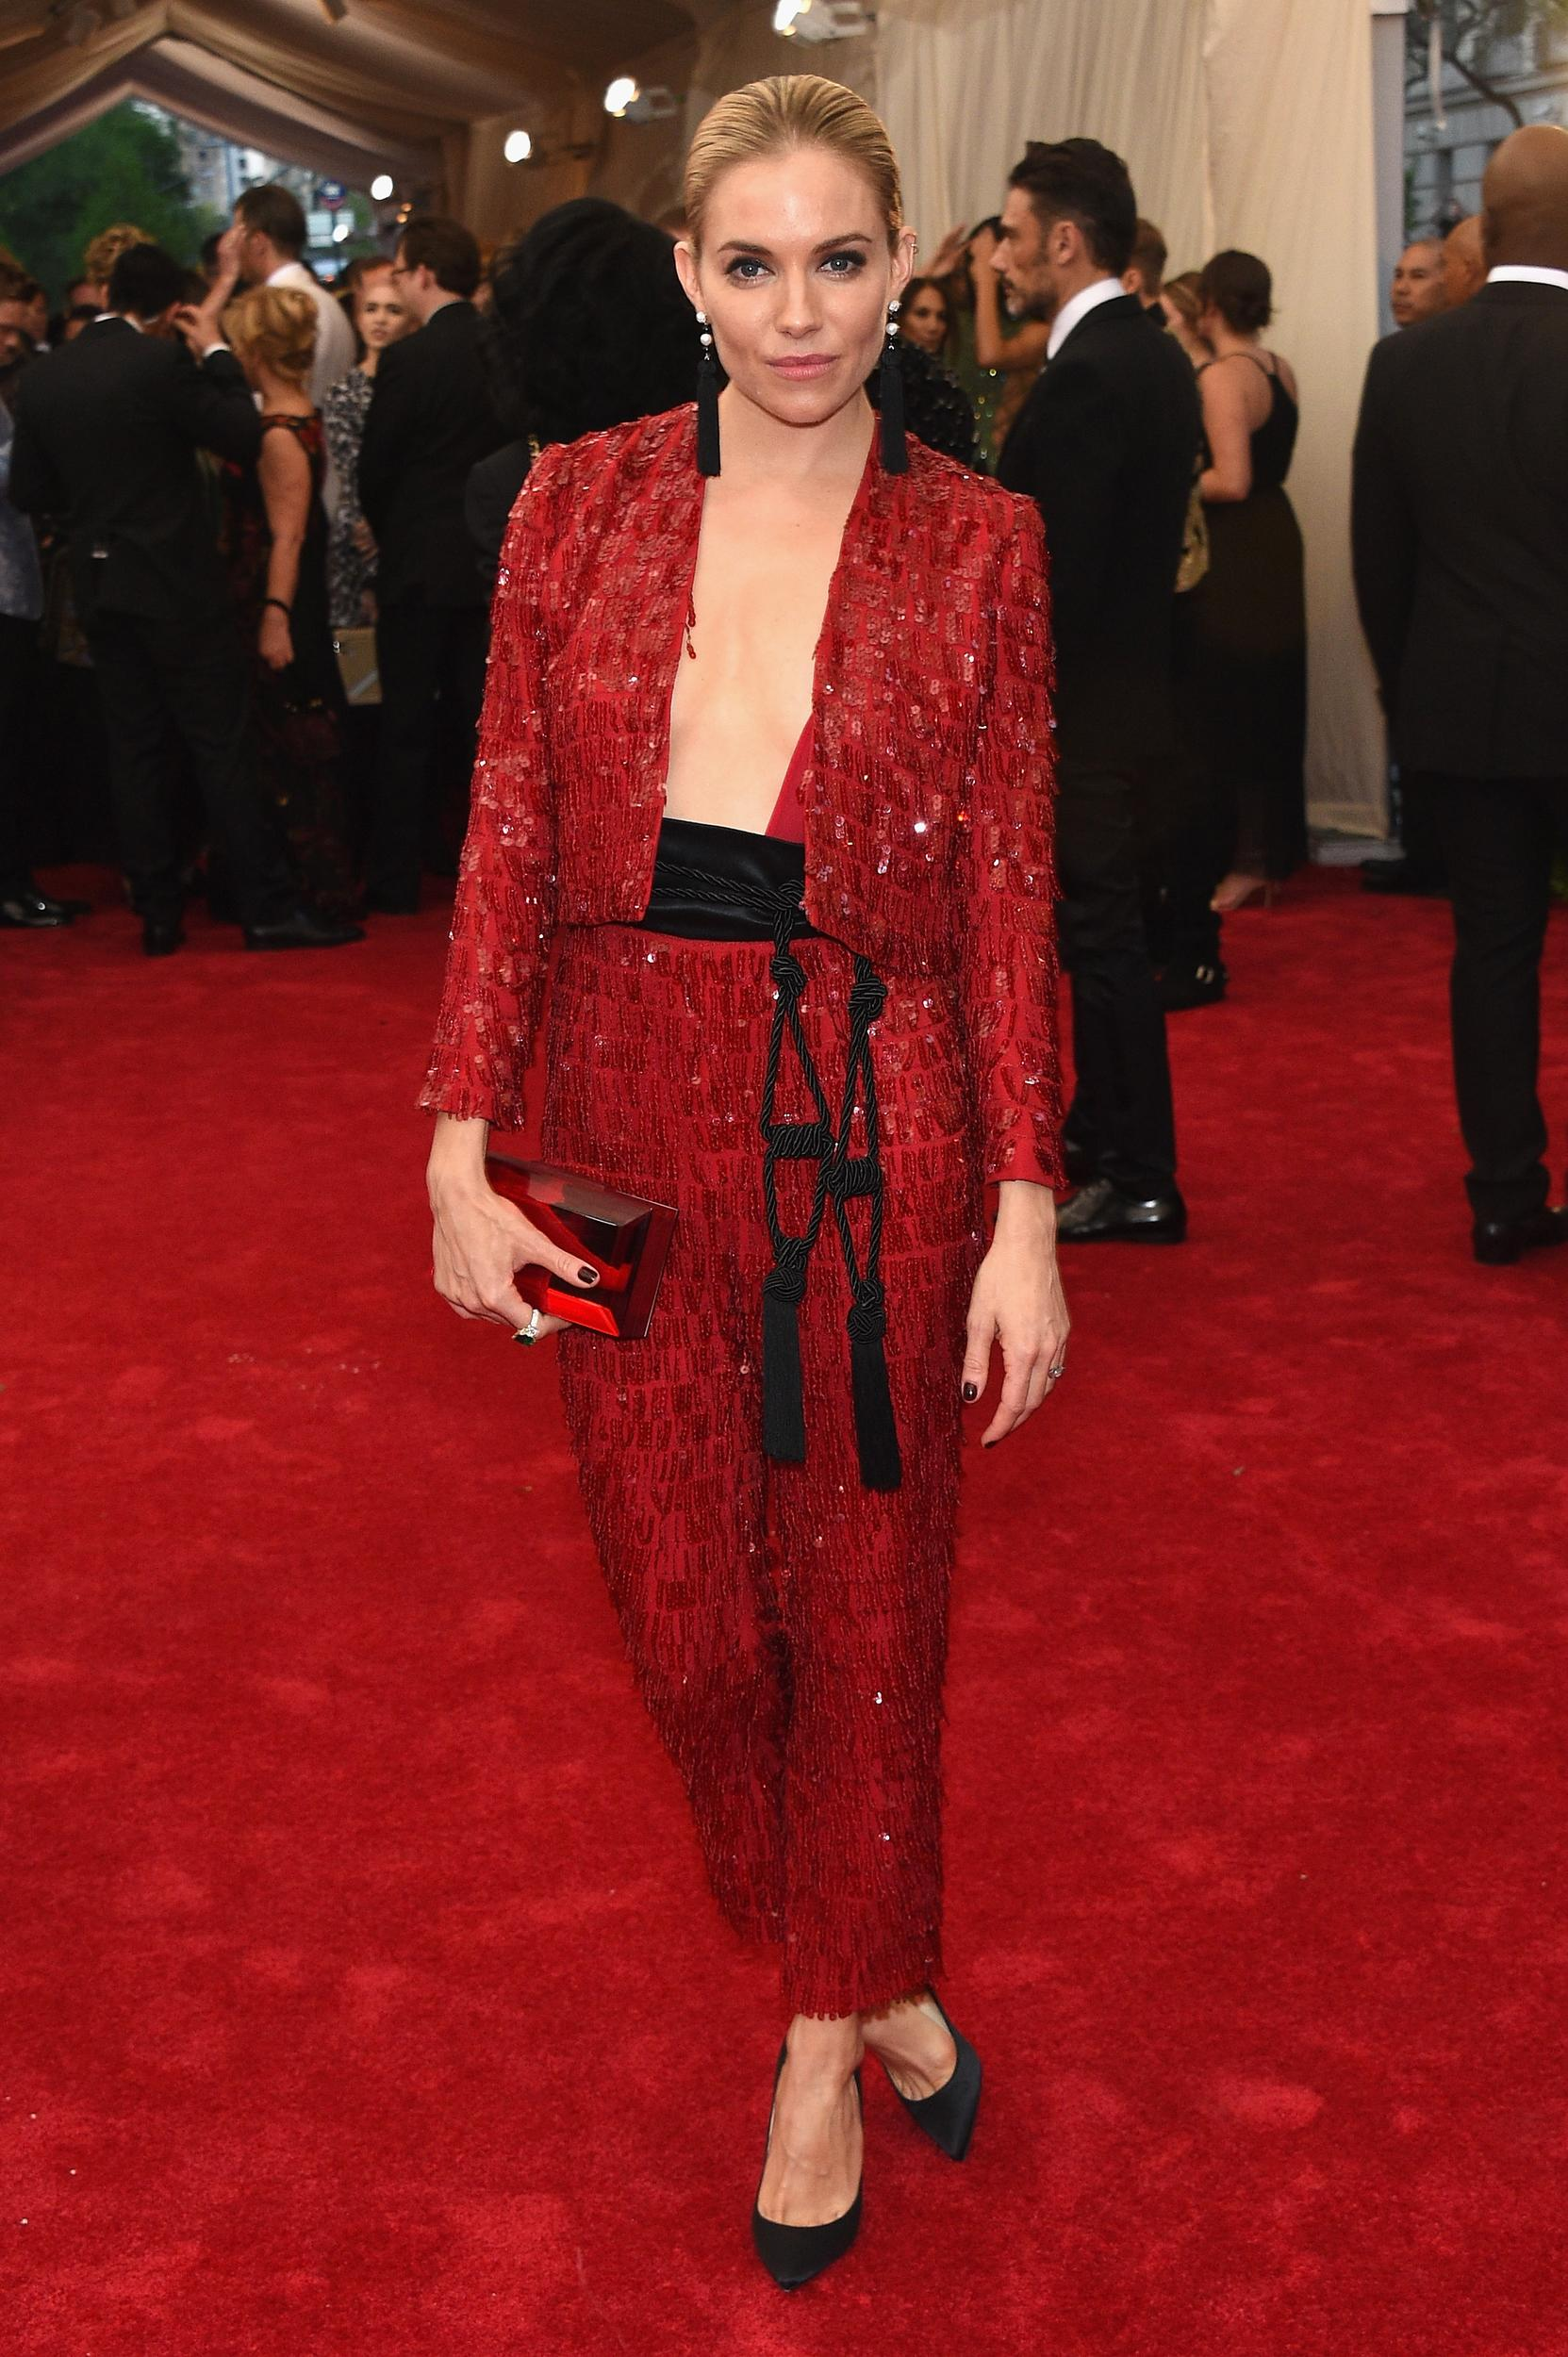 <p><strong>Best:</strong> Sienna Miller in Thakoon</p>  <p>Sienna Miller always kills it on the red carpet, and tonight's look was no different. We'reall about the fringed beading on her two-piece ensemble.</p>  <p>Photo:Larry Busacca/Getty Images</p>